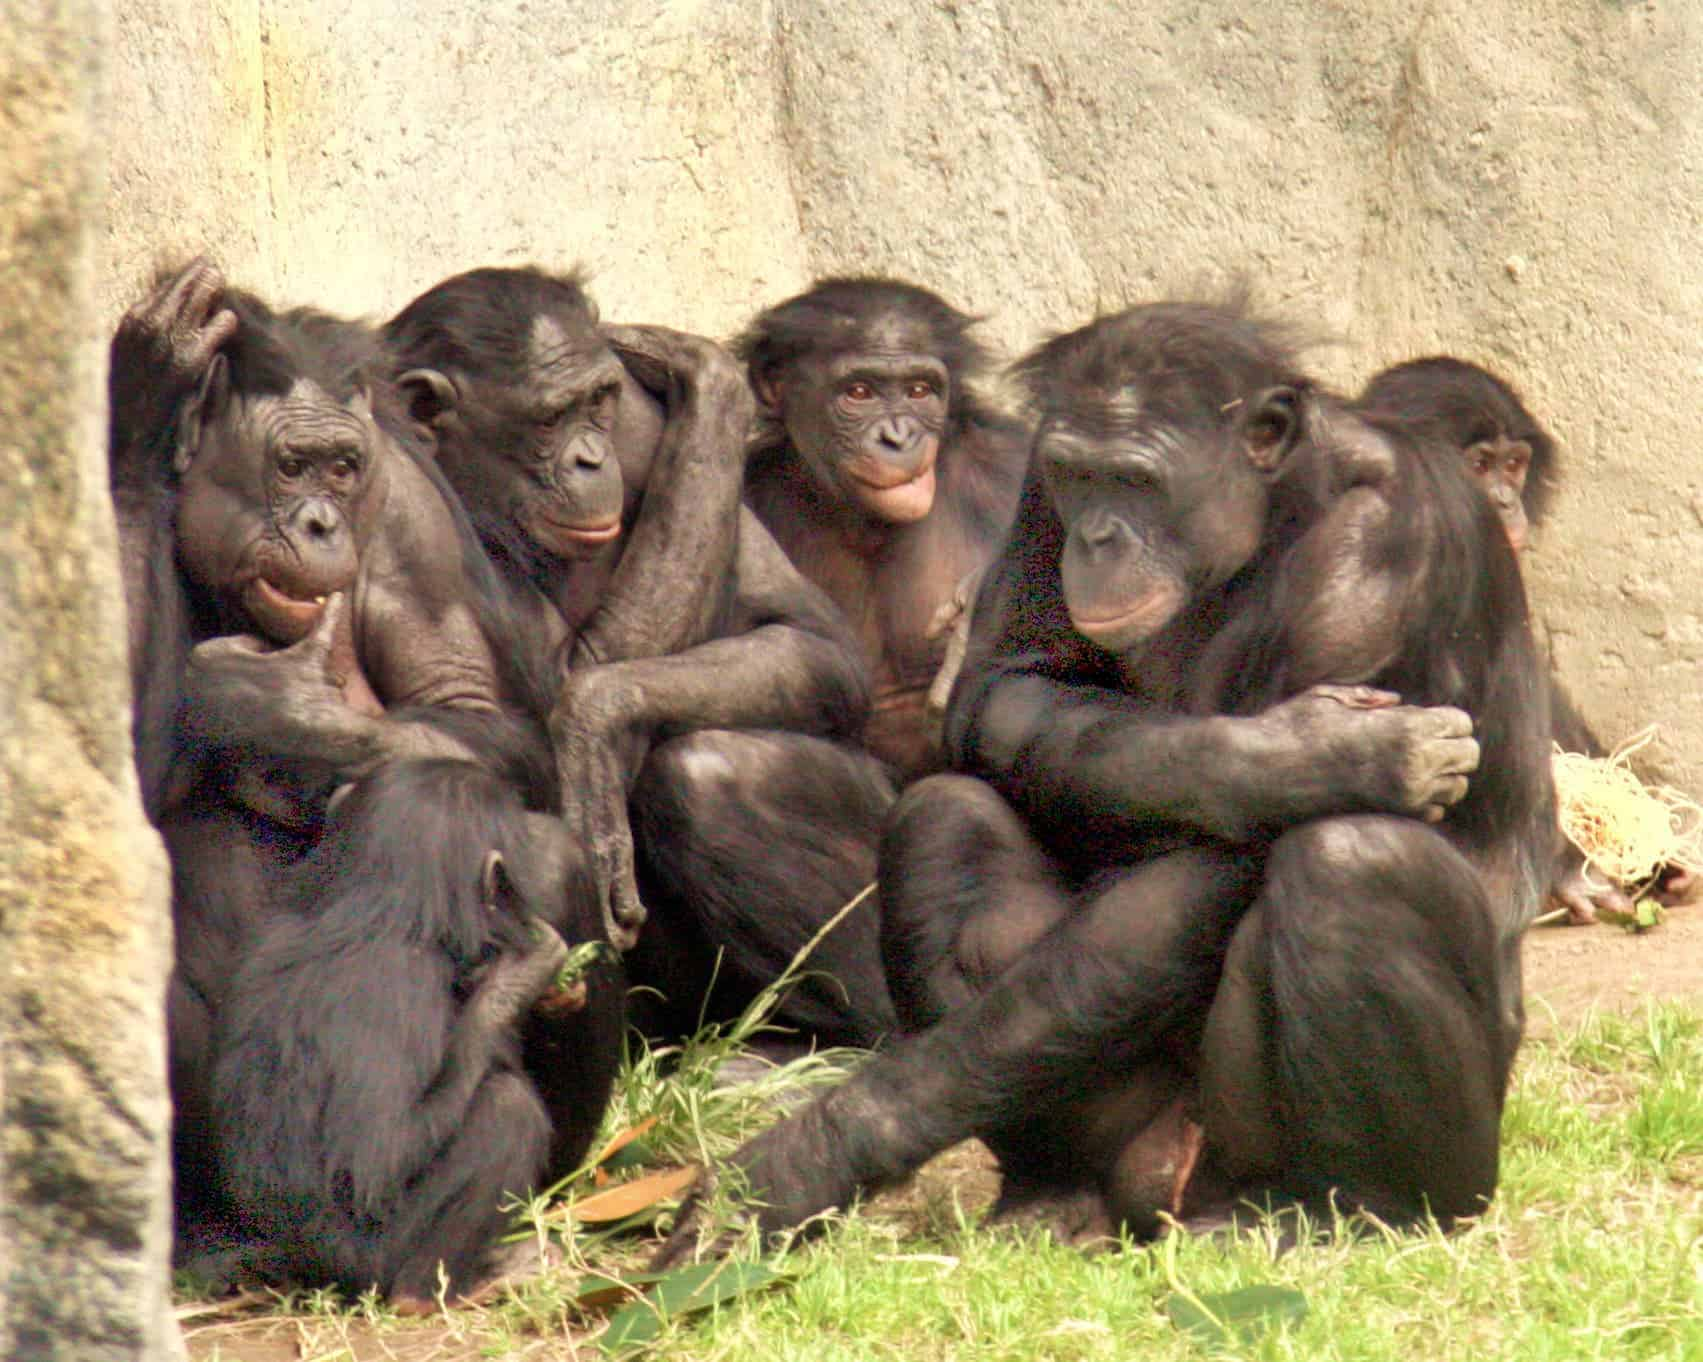 Bonobos like bullies more than helpers